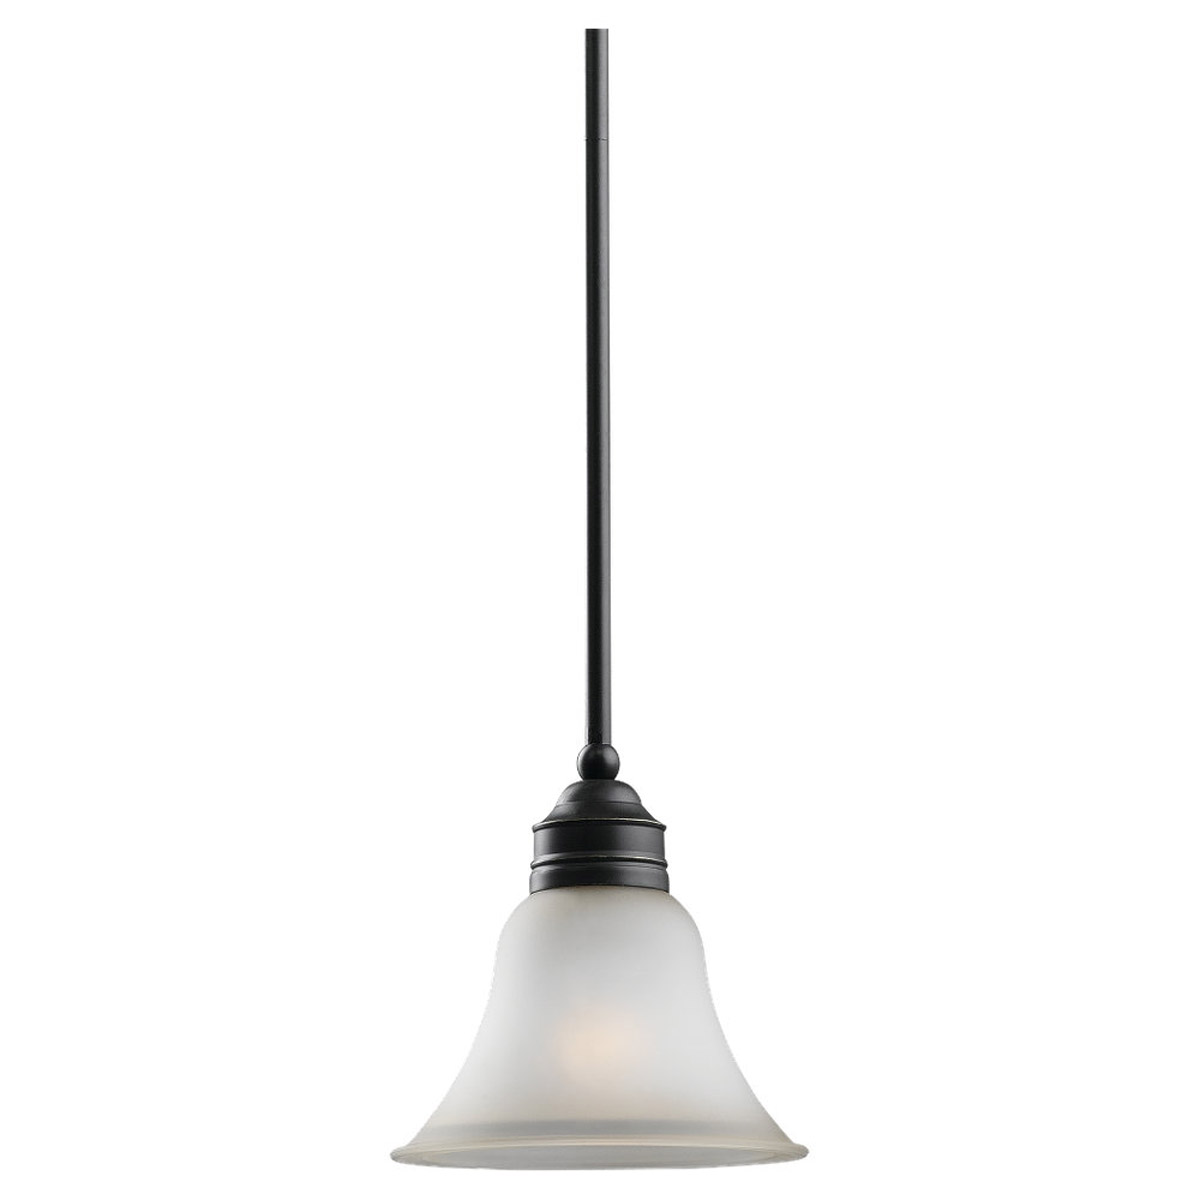 Sea Gull Lighting Gladstone 1 Light Mini Pendant in Heirloom Bronze 61850-782